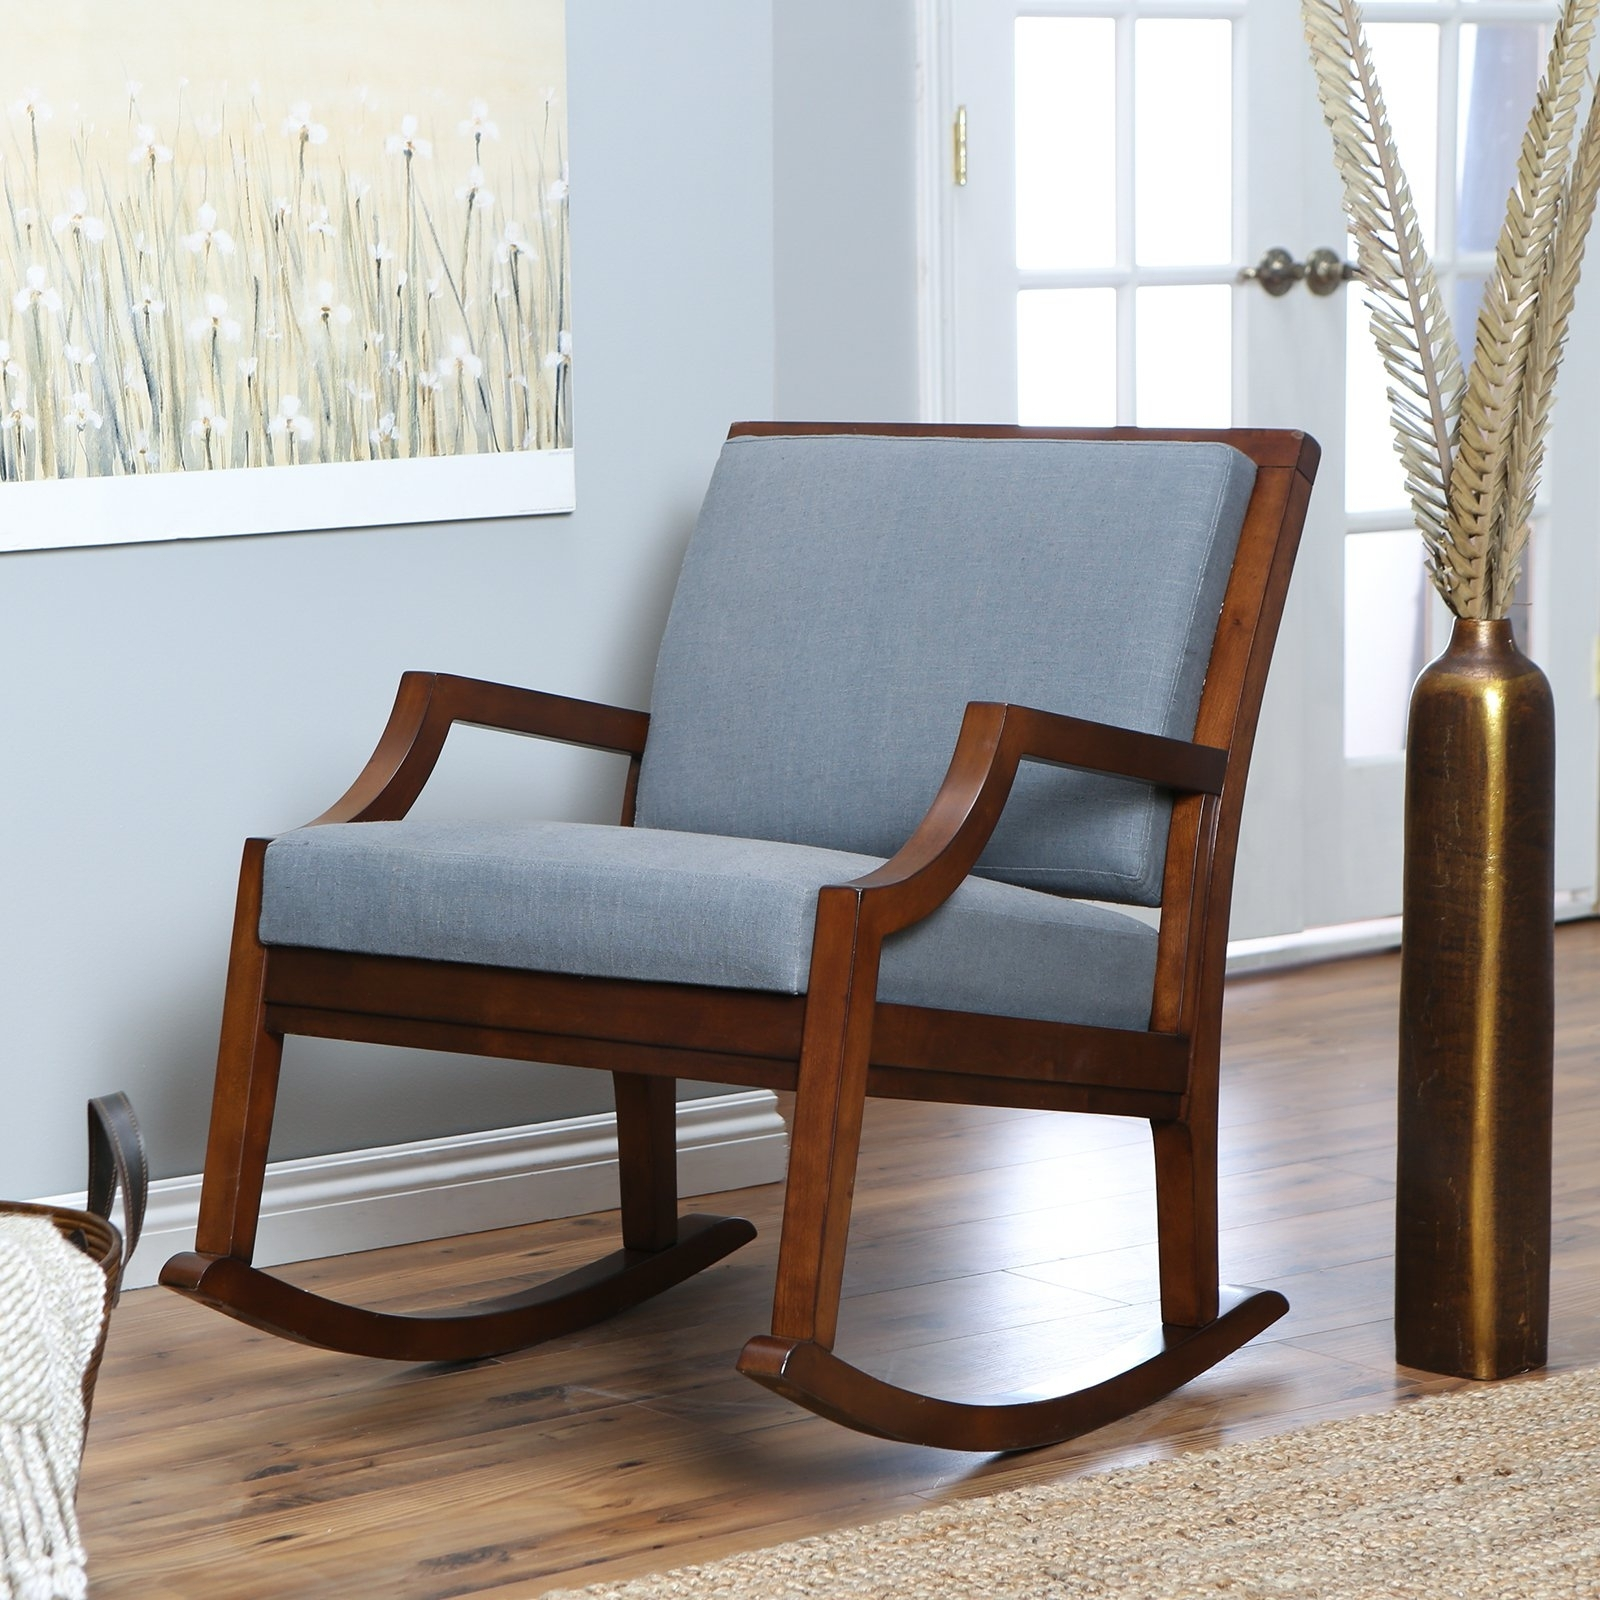 Latest Rocking Chairs With Cushions Throughout Brown Wooden Indoor Rocking Chairs With Blue Cushions Set On (View 3 of 15)